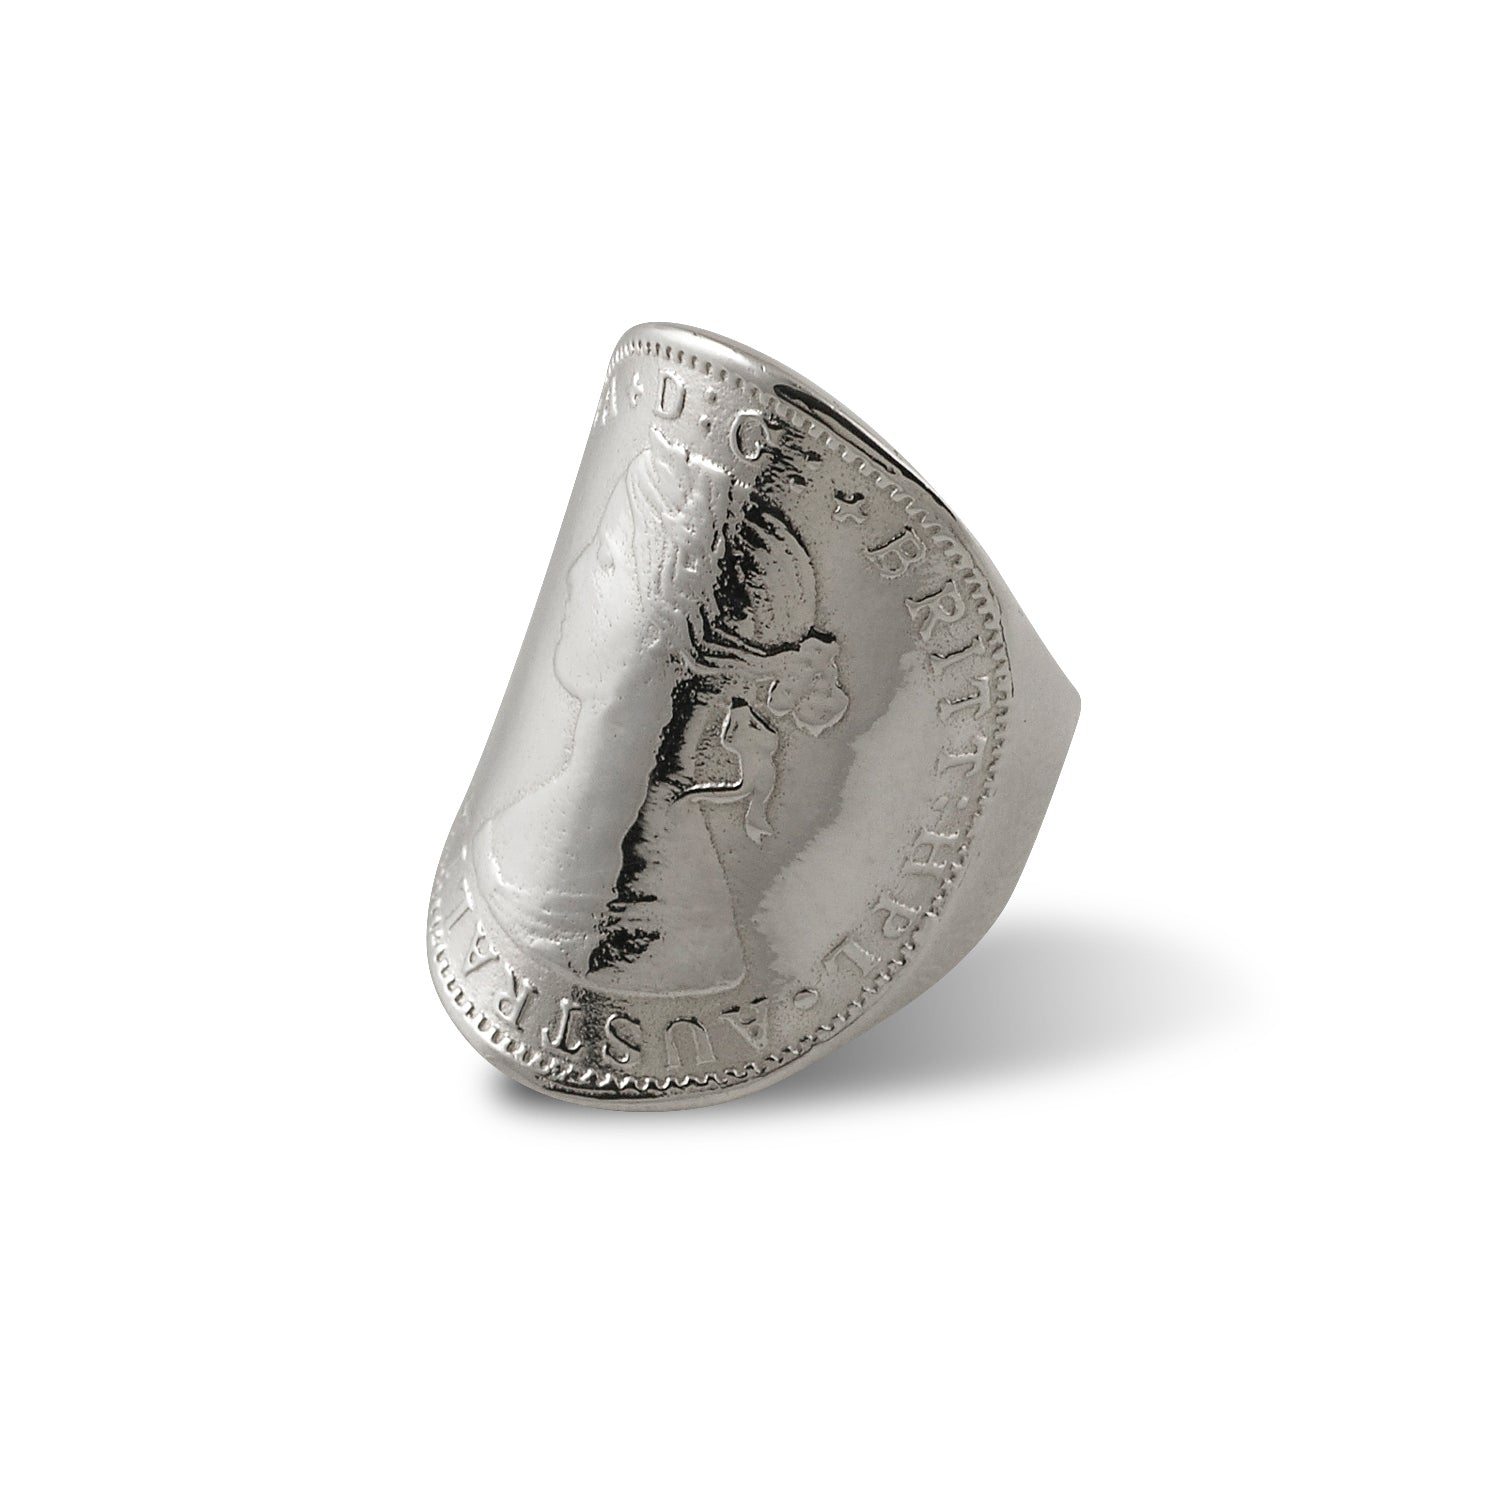 Von Treskow Sterling silver large curved coin ring (Queen)